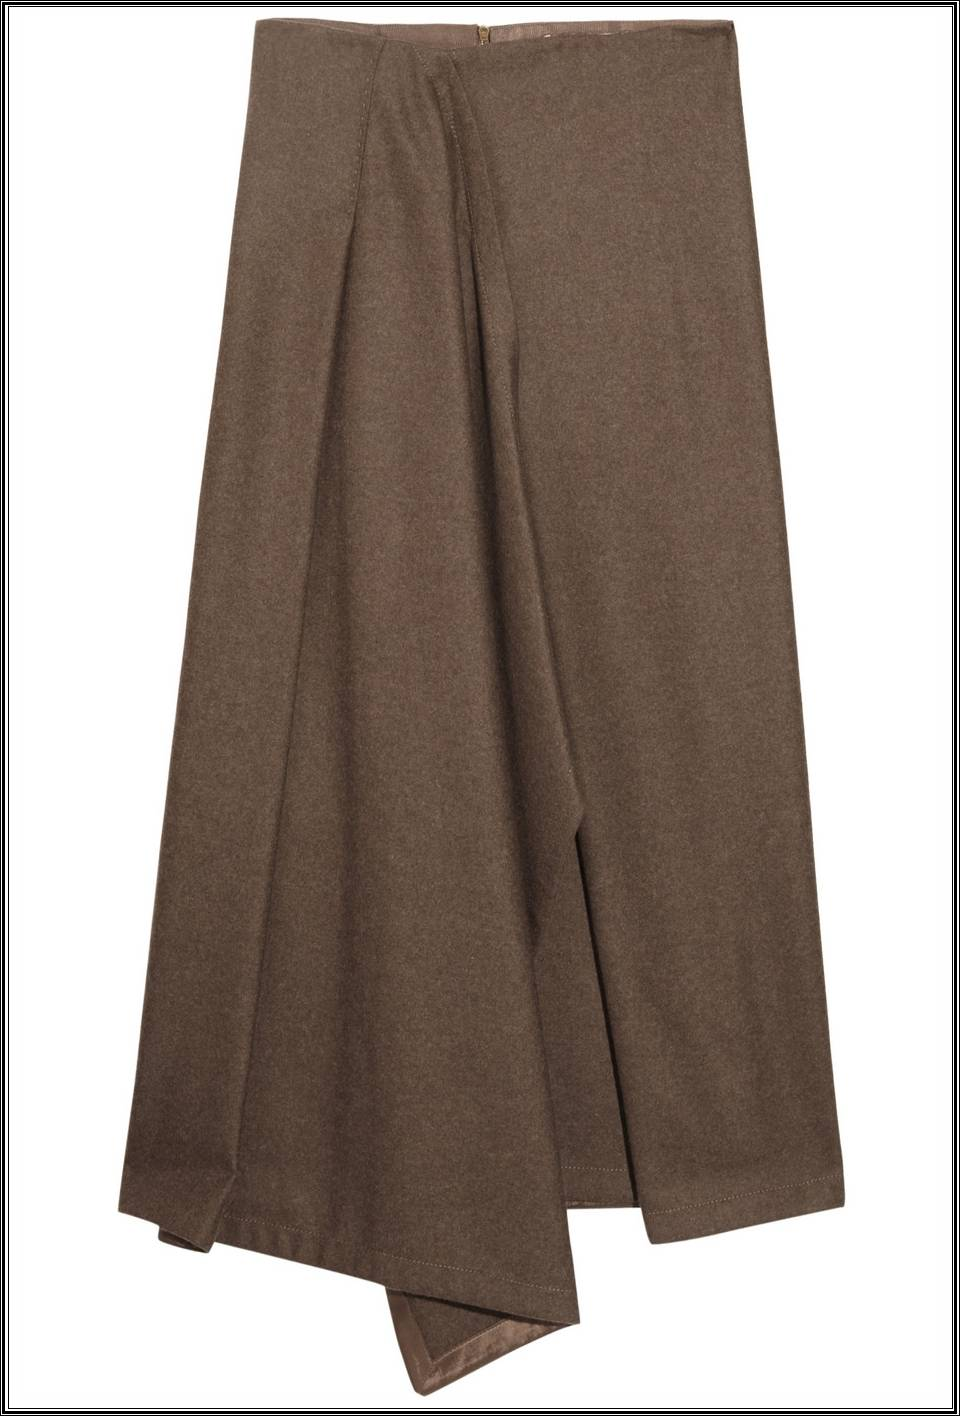 Lastest Purchase The Anywhere Skirt HERE  $9 For A While You Guys Have Been Asking For Patterns For Women And Teenagers This Skirt Pattern Works For Both!and For Little Girls As Well But I Really Love How Tailored And Fun It Looks On The Older